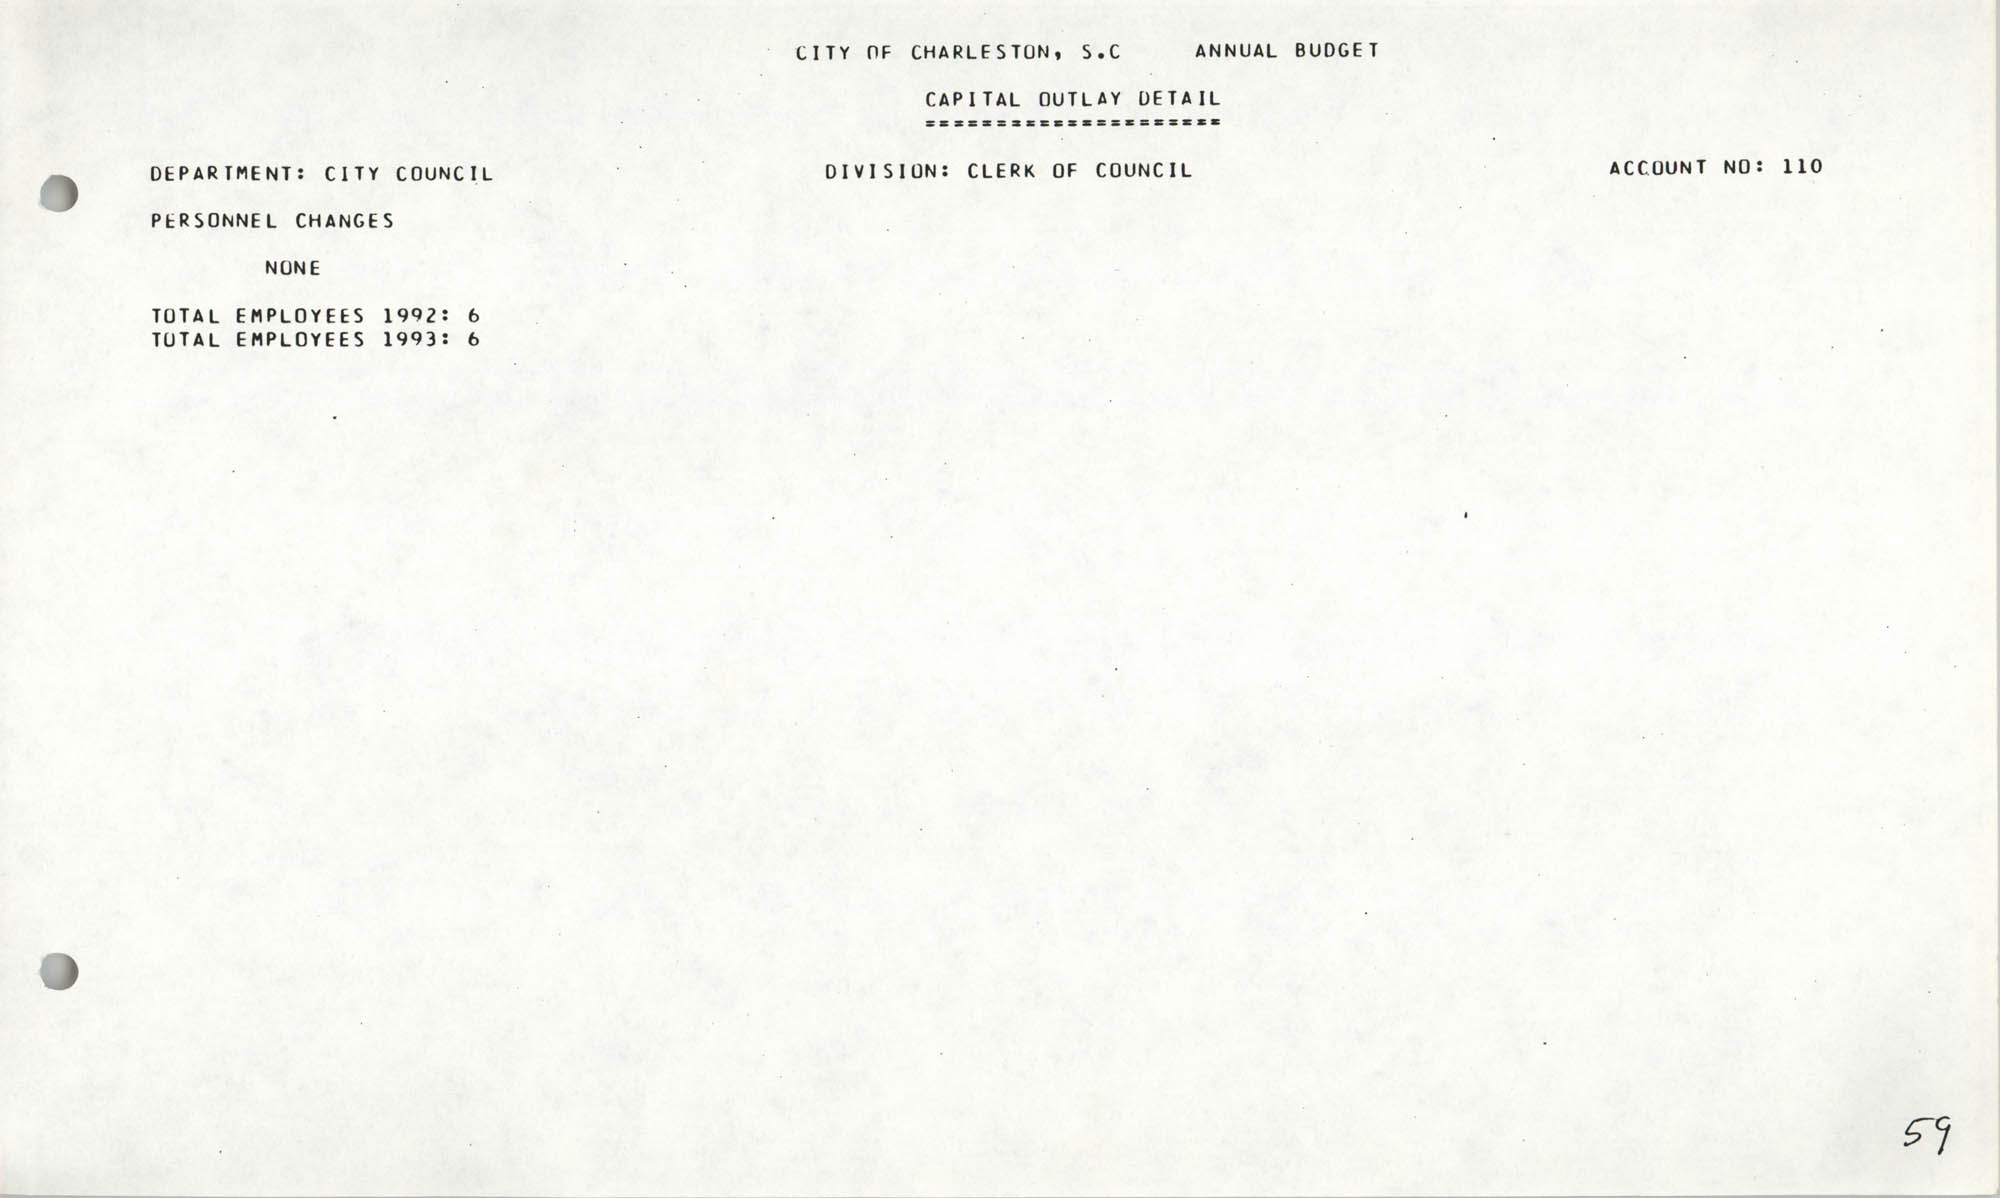 The City Council of Charleston, South Carolina, 1993 Budget, Page 59